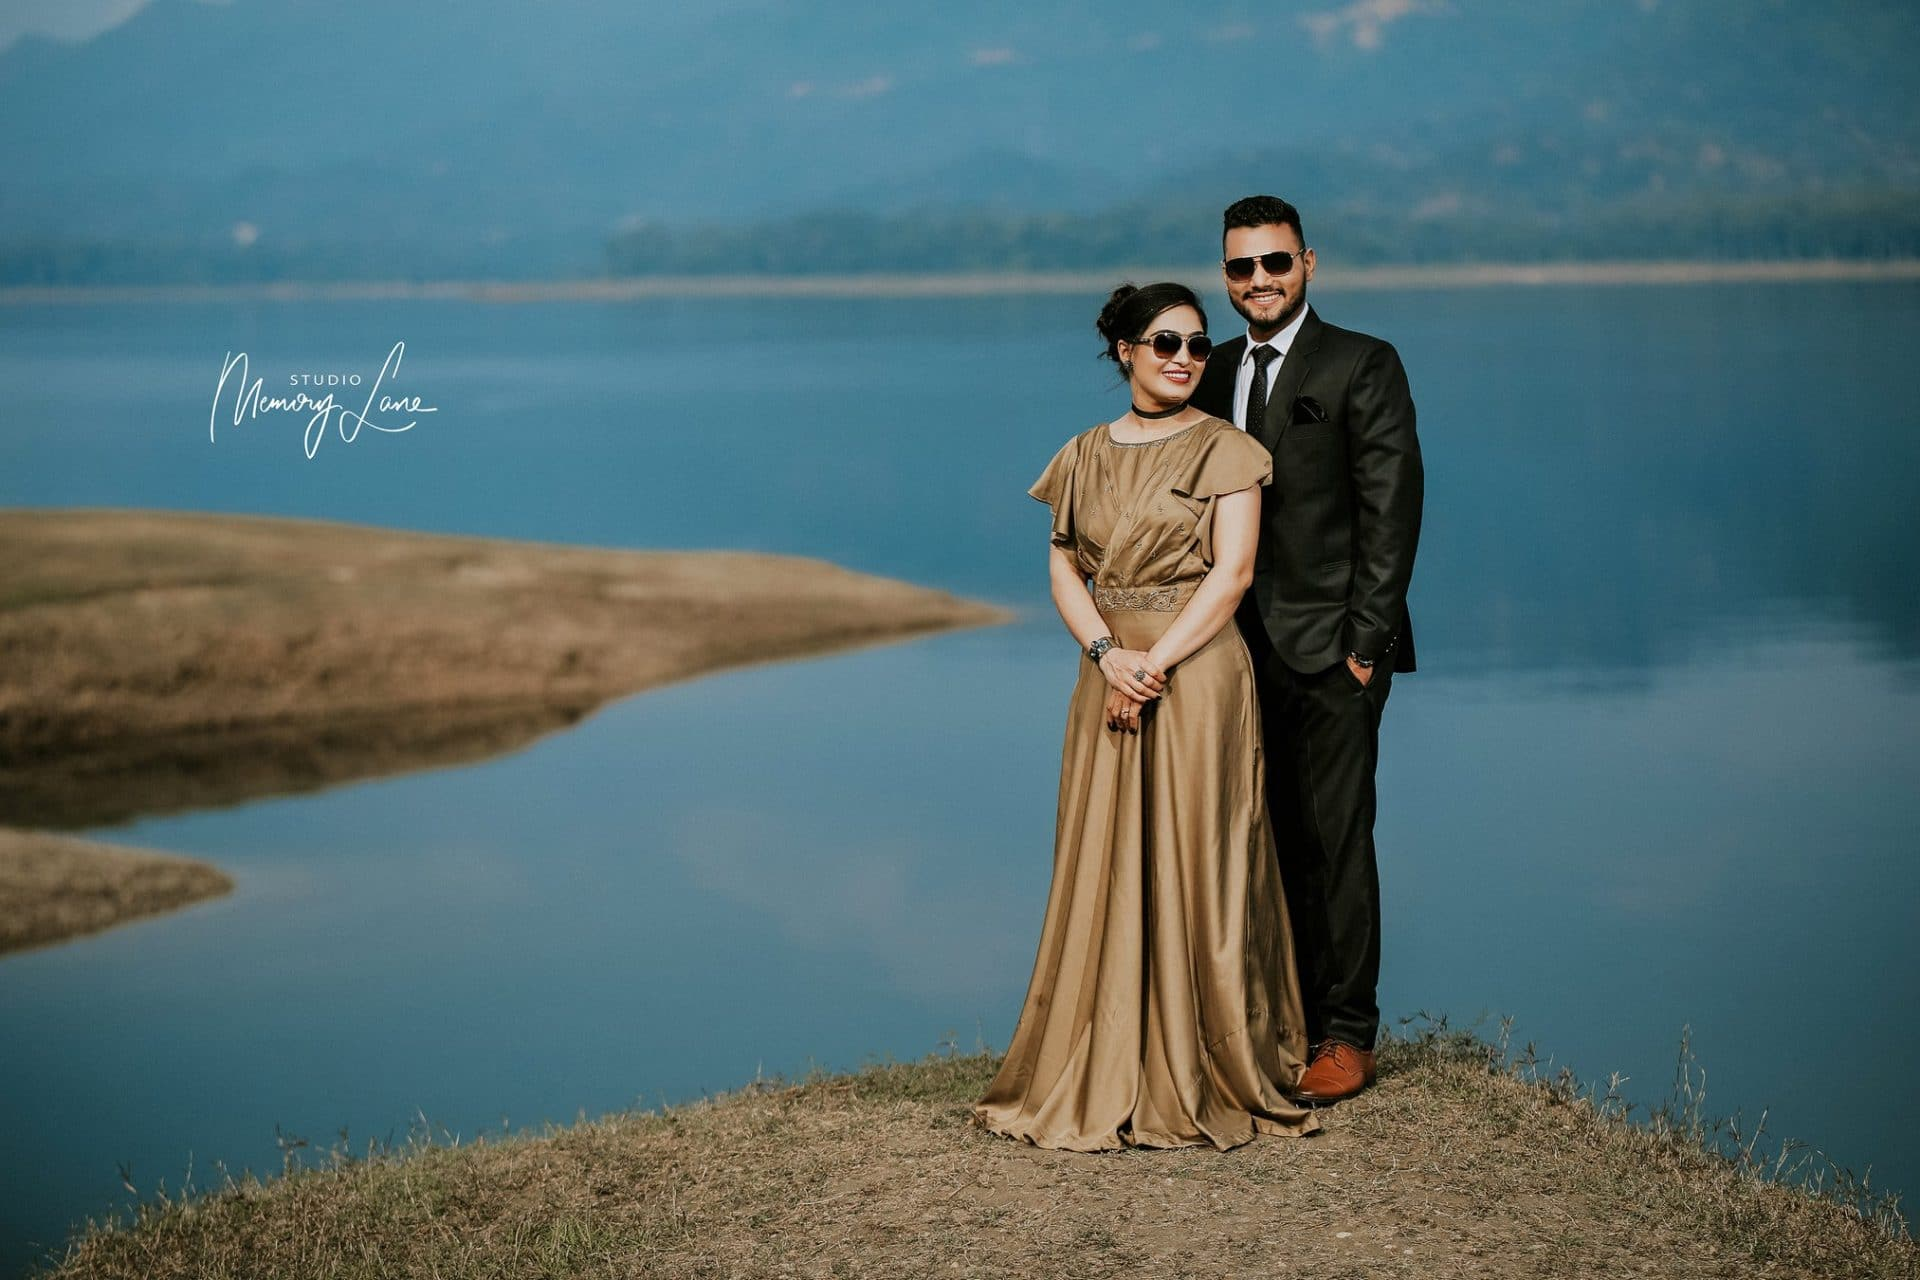 Destination wedding photographer Chandigarh